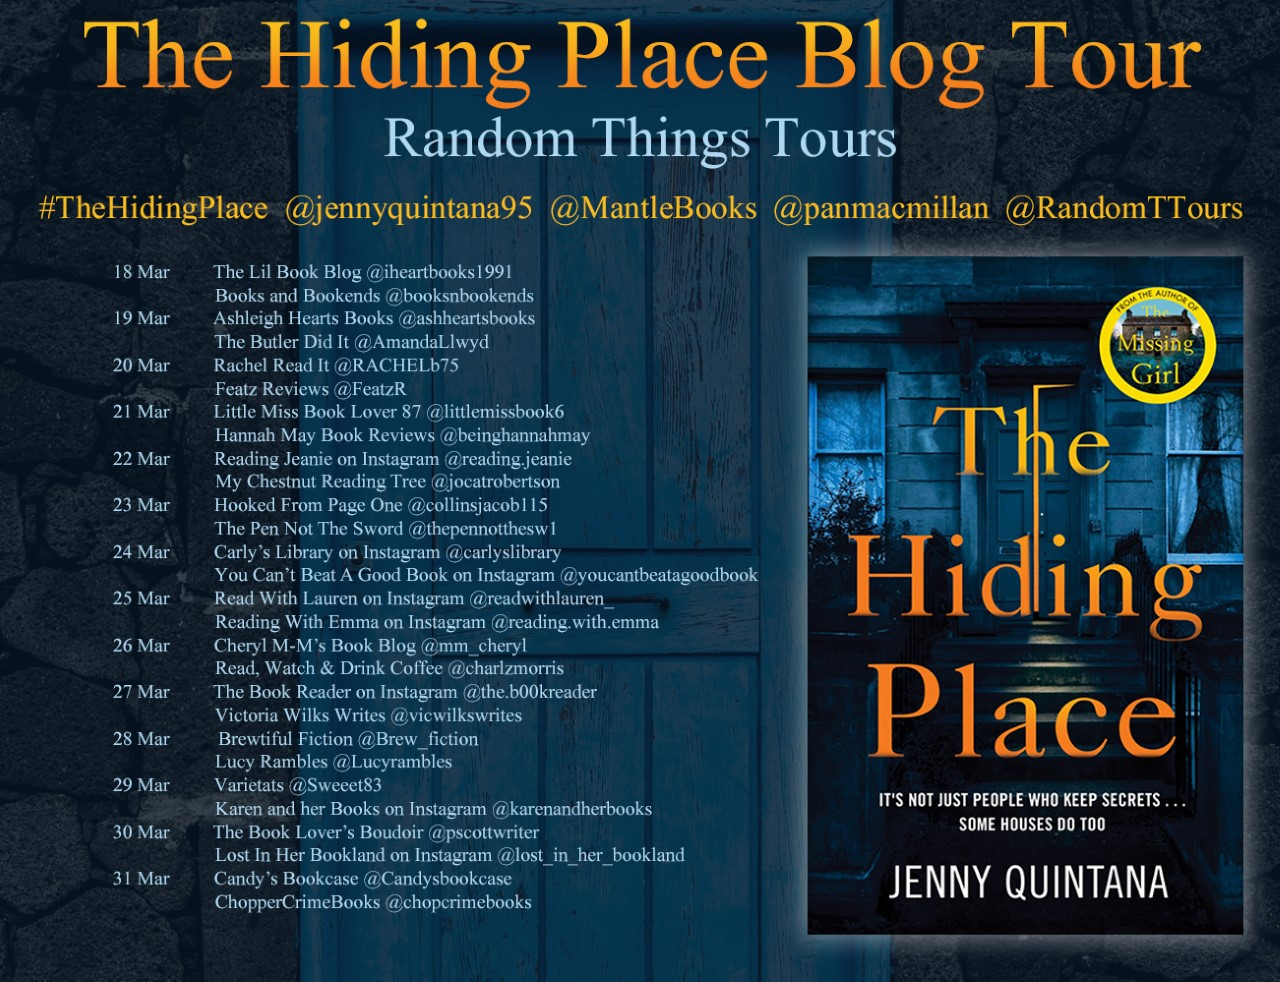 The Hiding Place BT Poster